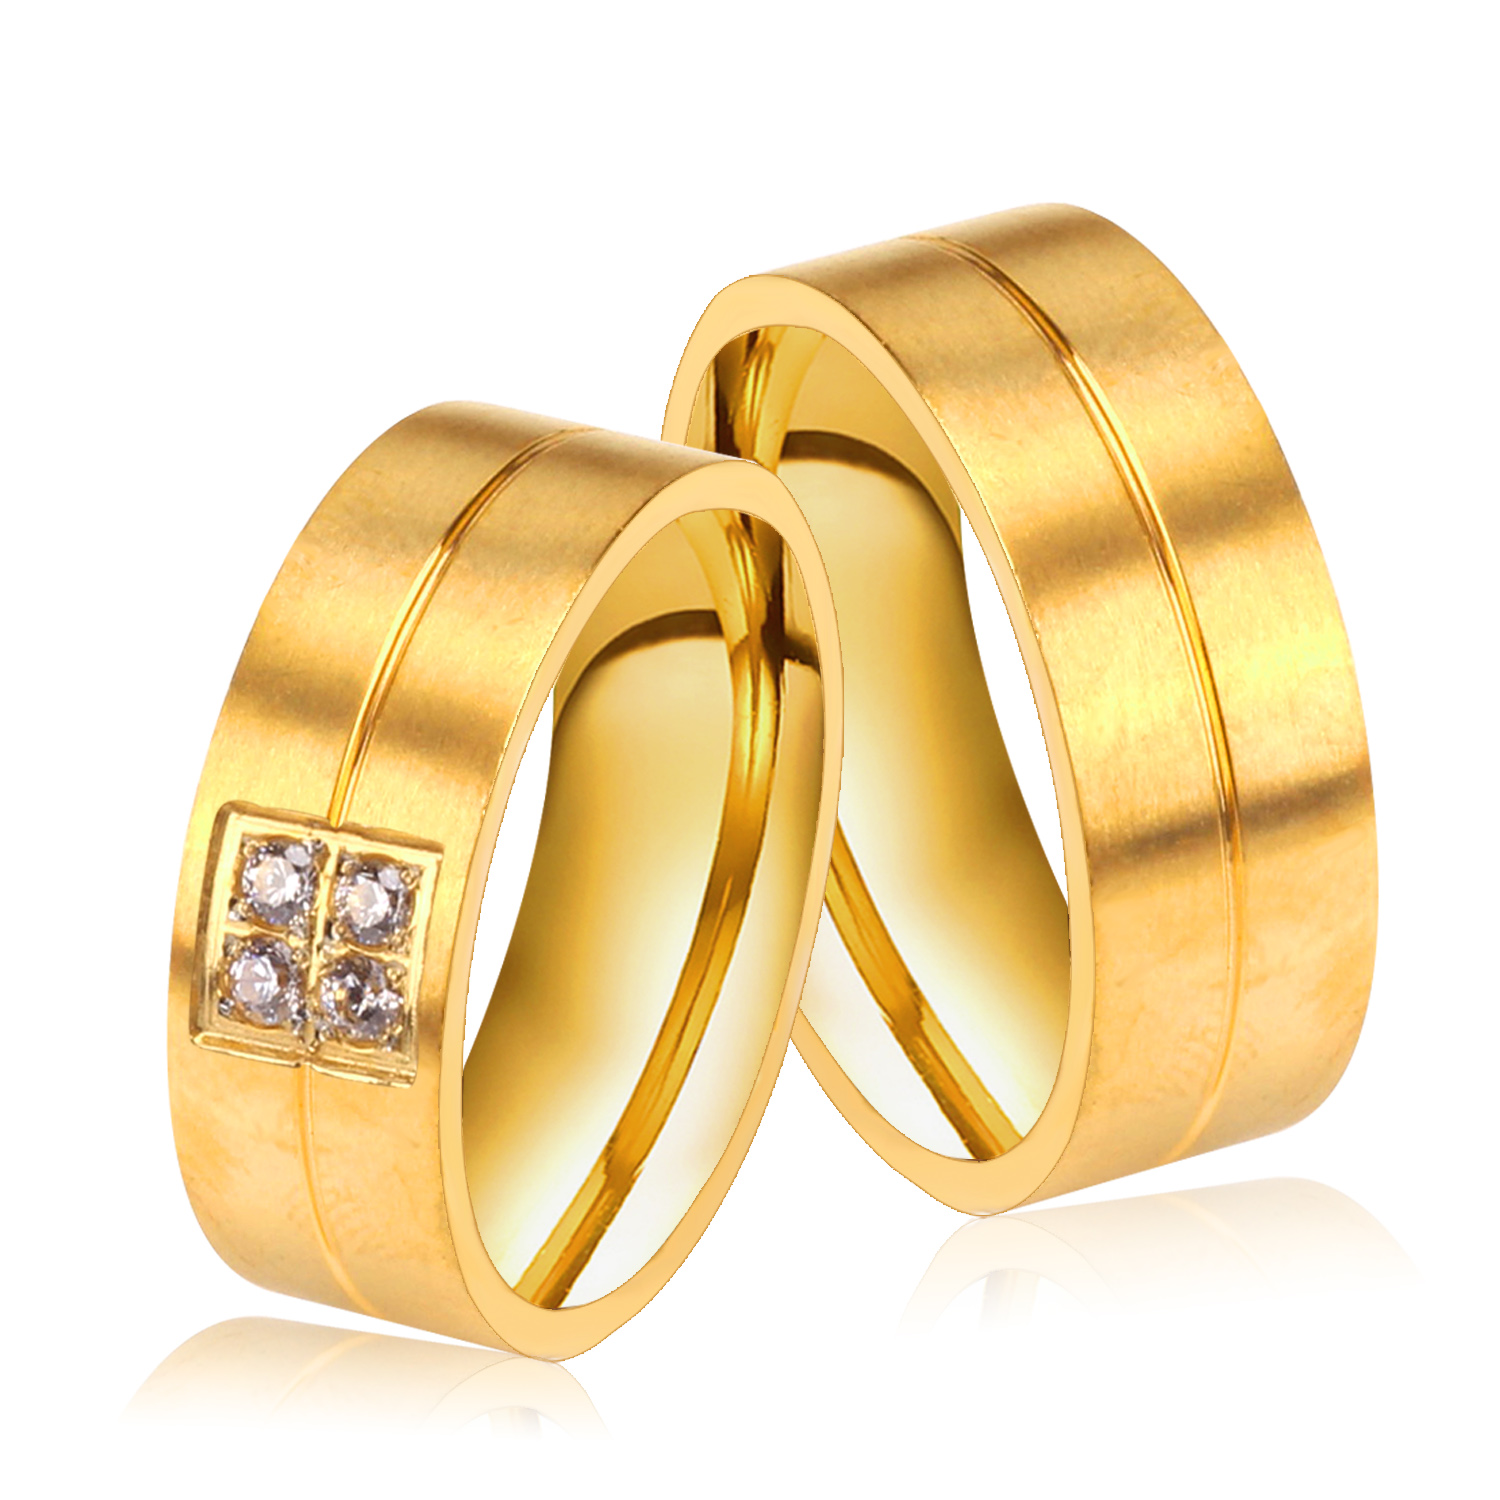 Aliexpress.com : Buy Brand New Wedding Bands Rings for ...